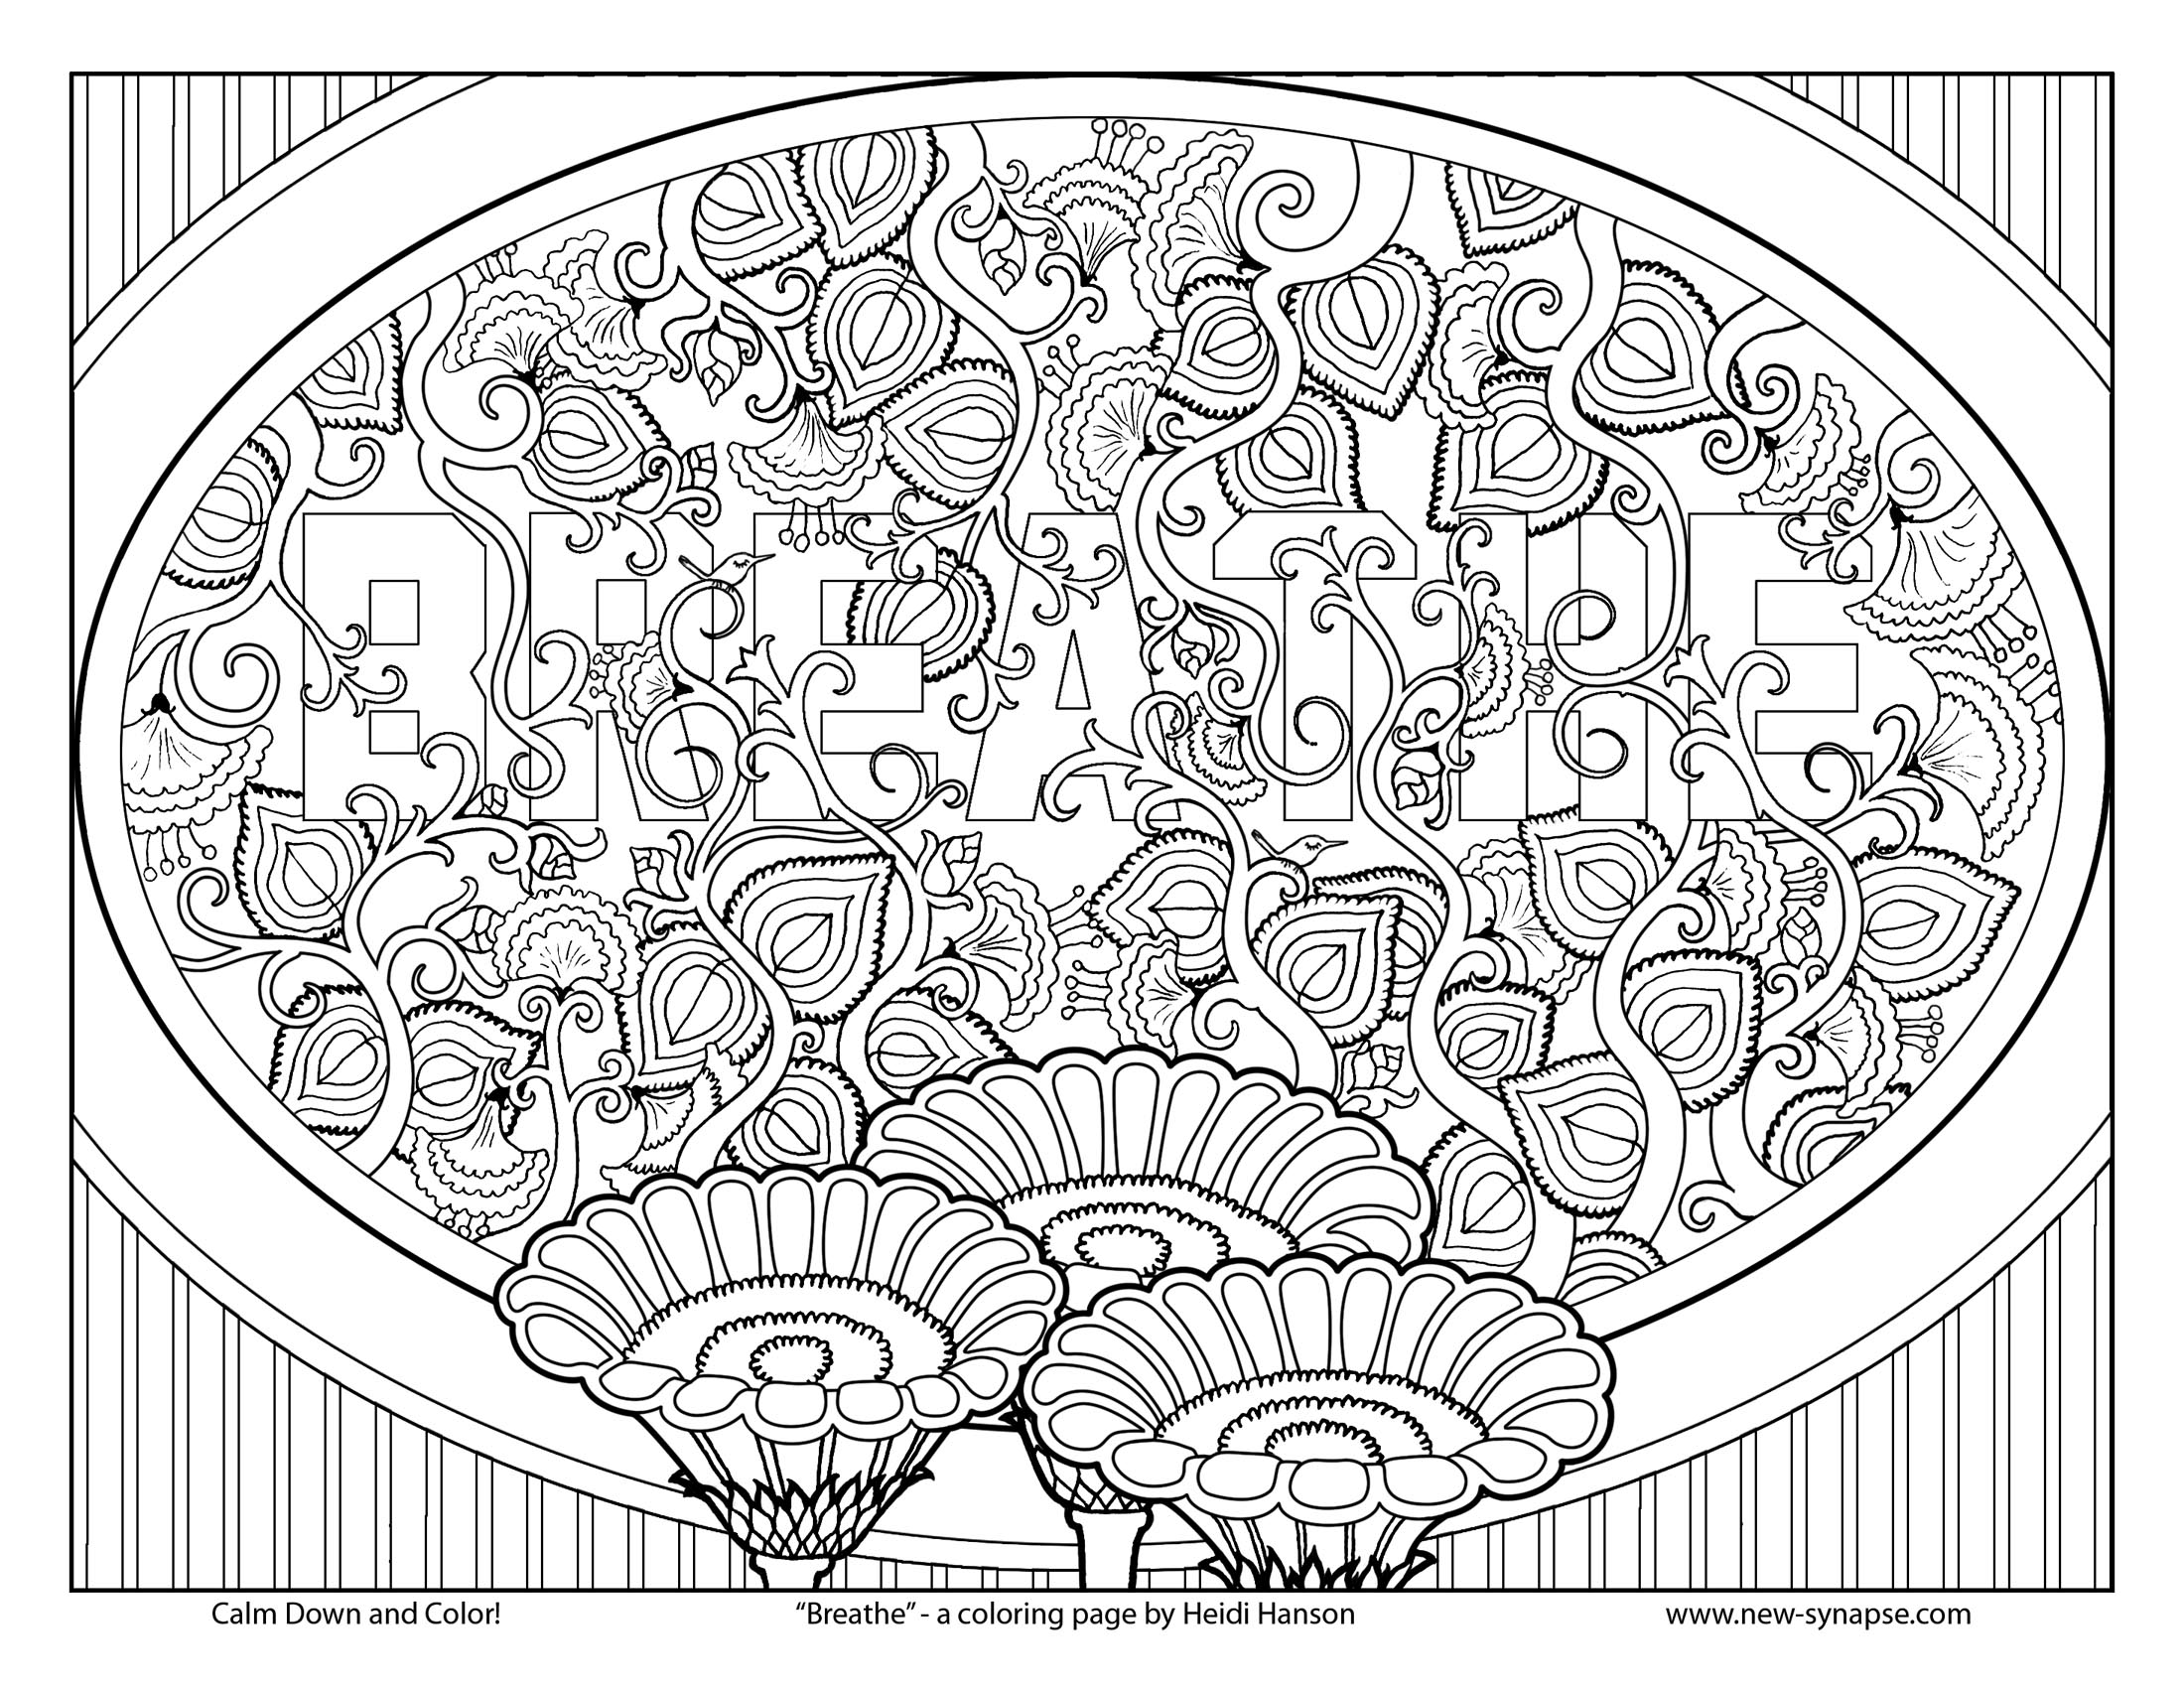 Posh coloring book soothing designs for fun and relaxation - Coloring Book Relaxing Download Coloring Pages Relaxation Amazon Com Posh